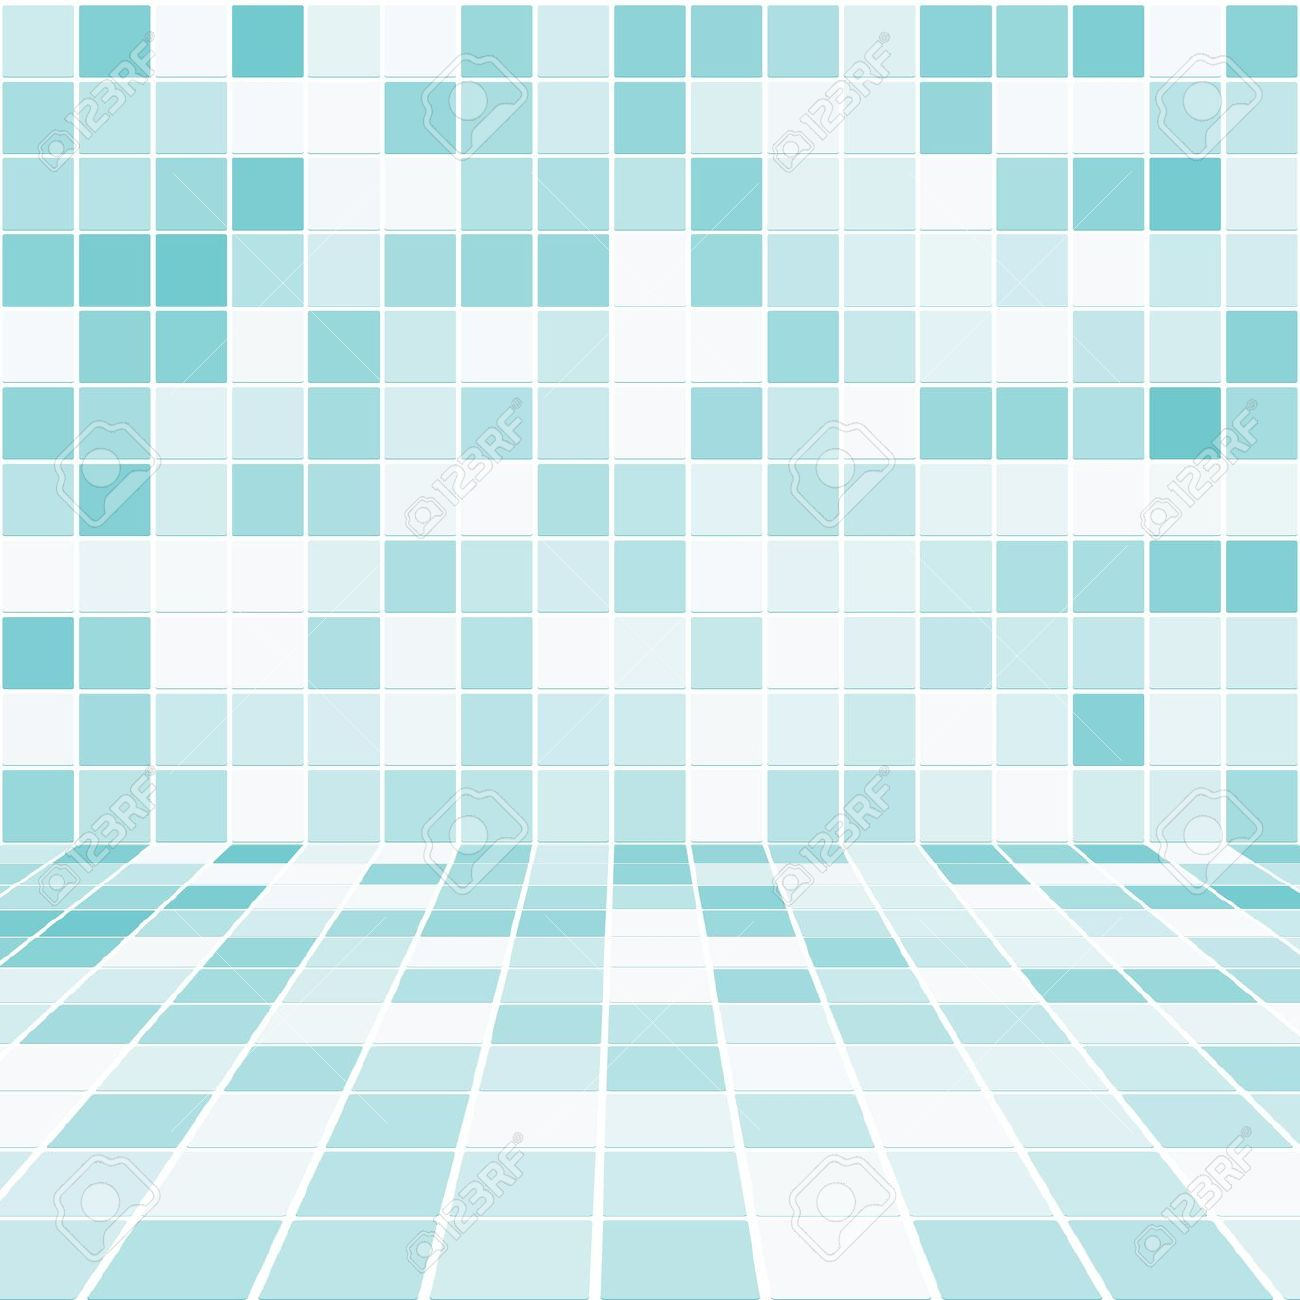 Tiles Clipart 20 Free Cliparts Download Images On